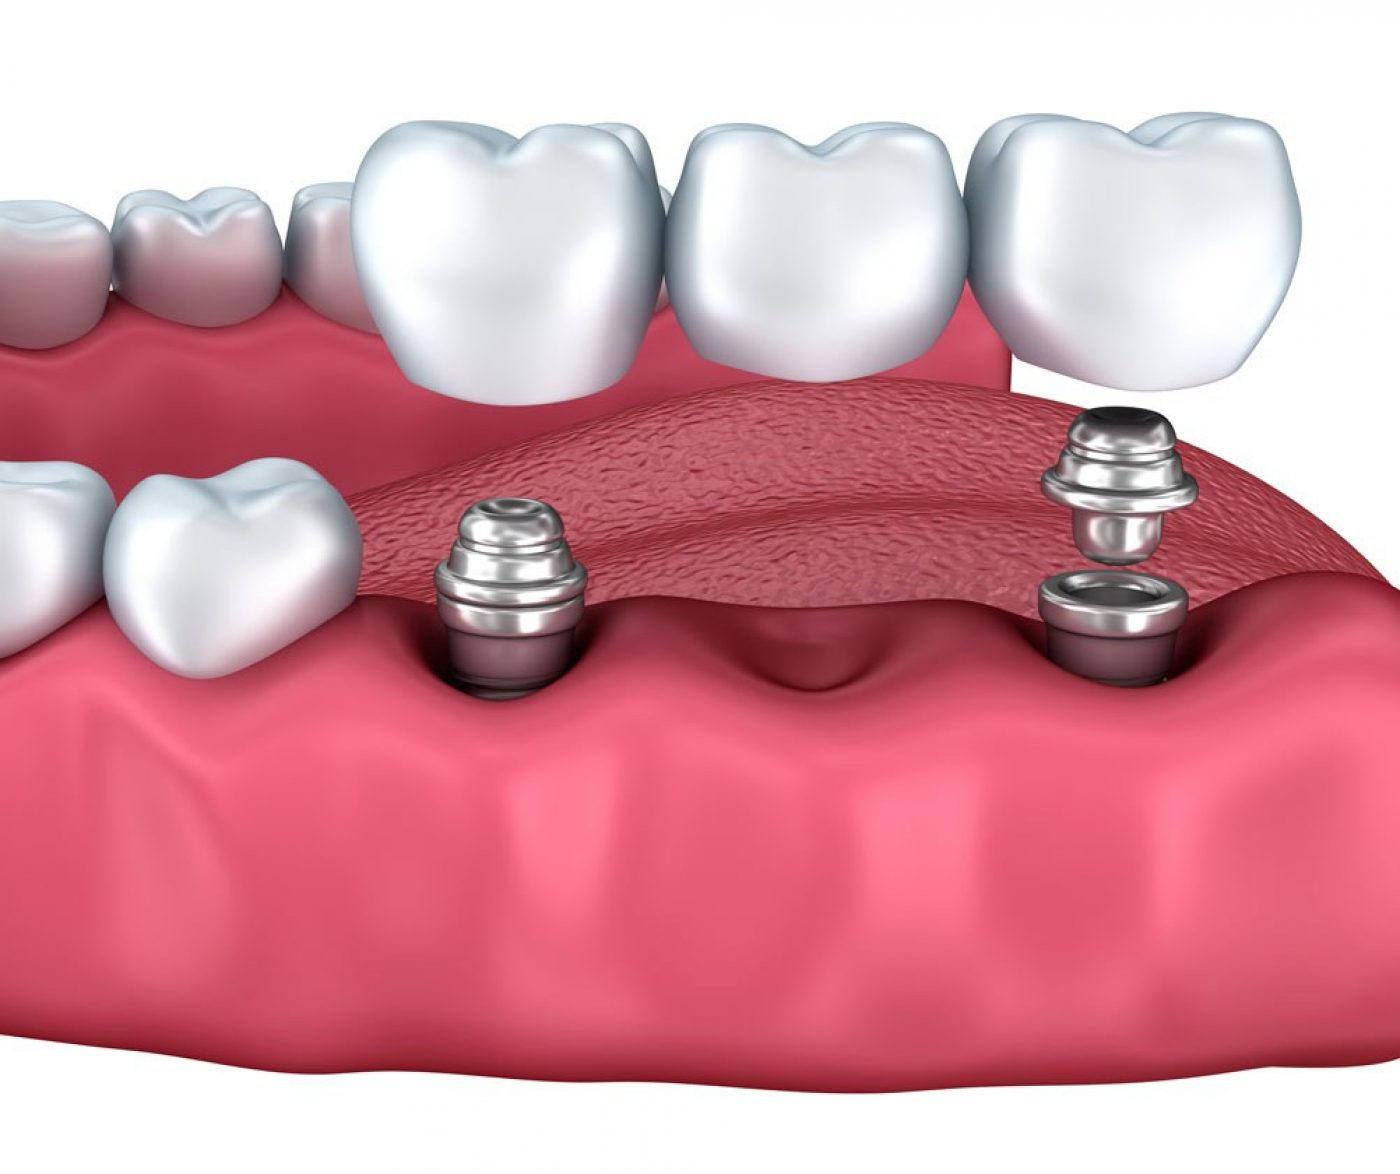 Alexandradental Dental Implants Multiple